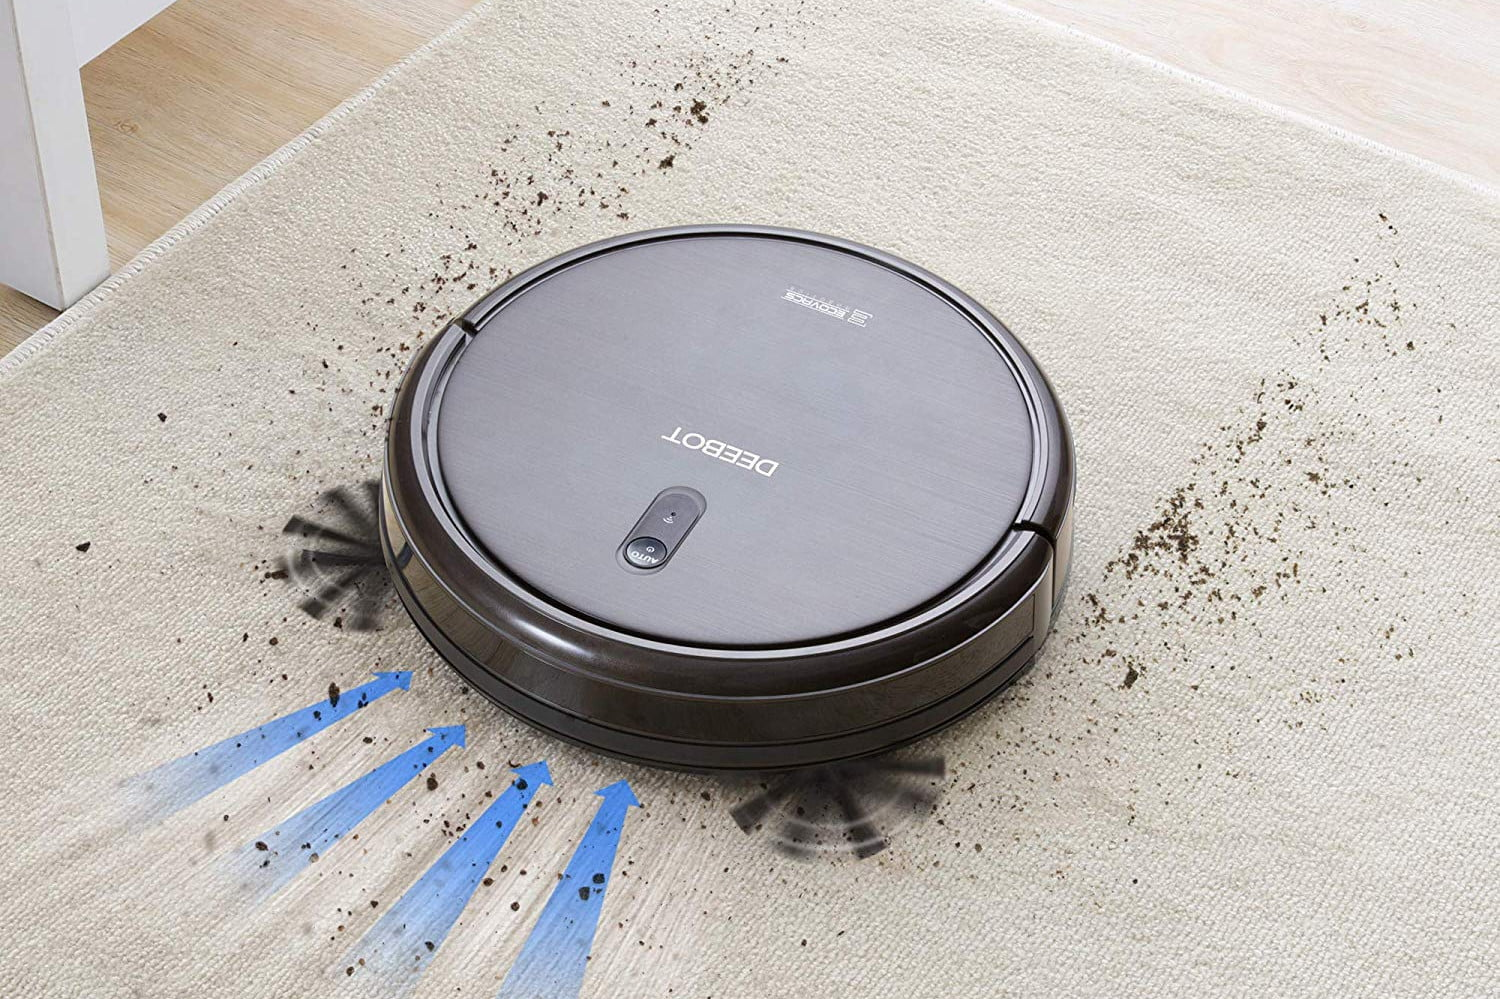 amazon 24 hour deal best price ever on ecovacs deebot n79s robot vac vacuum cleaner 2  1